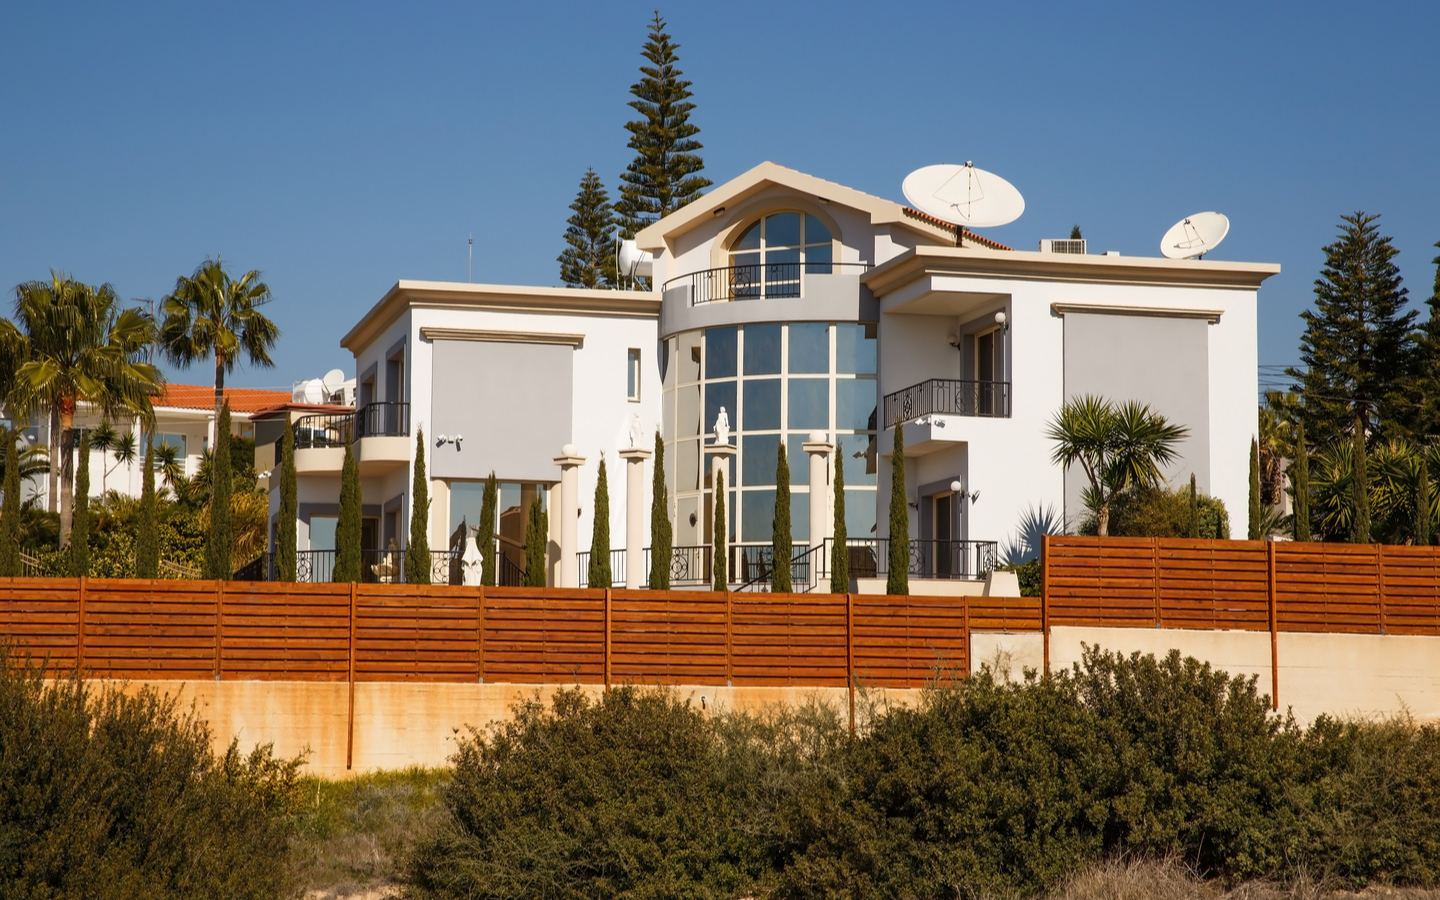 It will be a wise decision on your part to invest in Cyprus